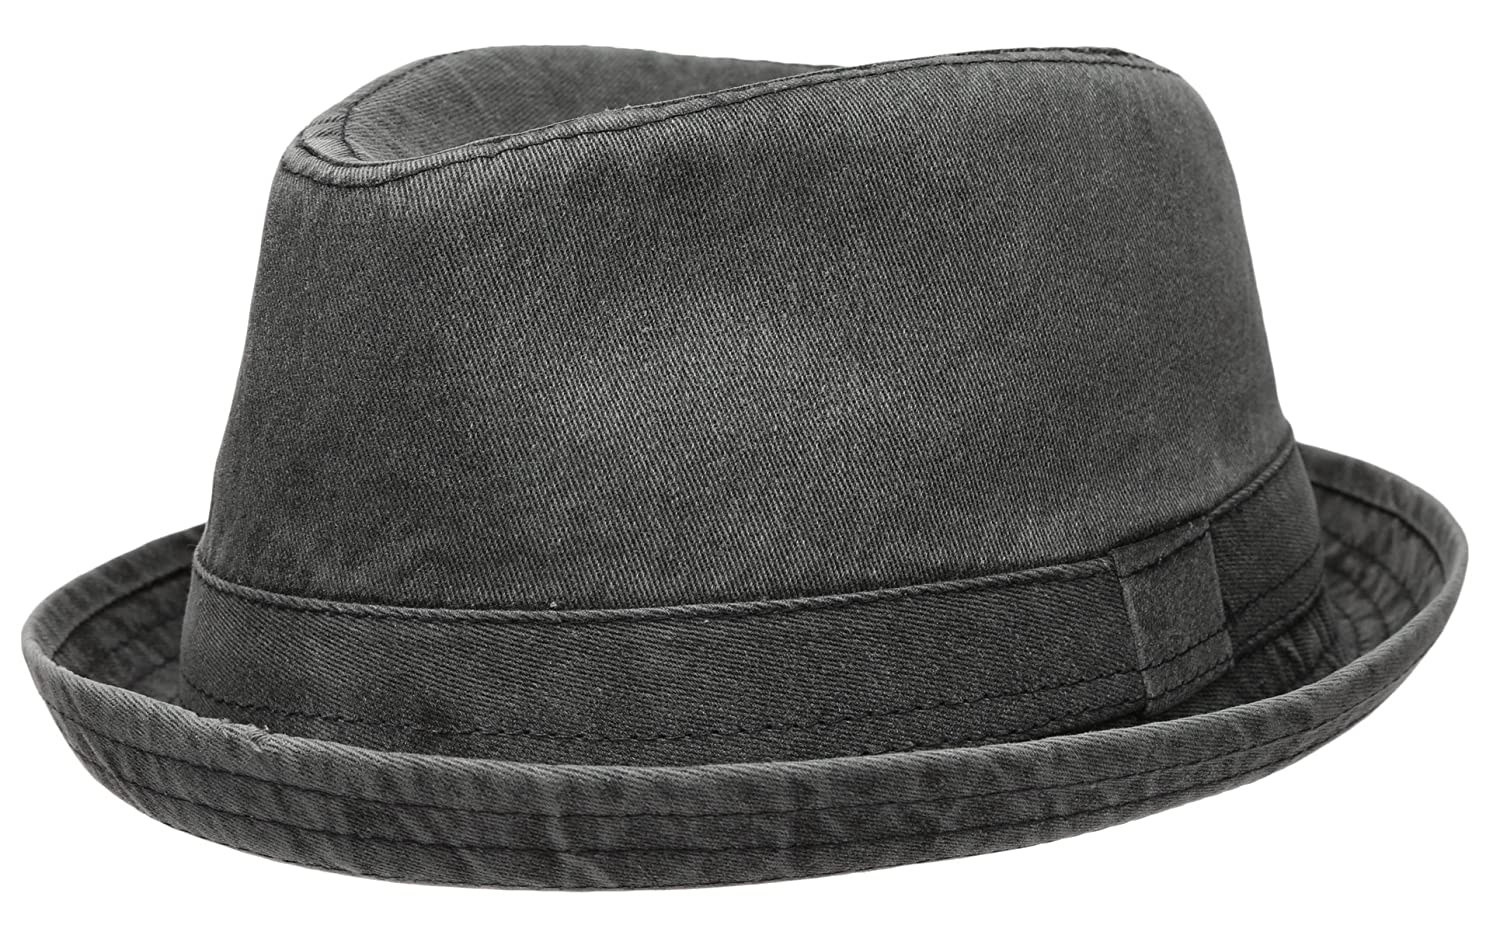 5d1463366f Epoch Men's Casual Vintage Style Washed Cotton Fedora Hat at Amazon Men's  Clothing store: